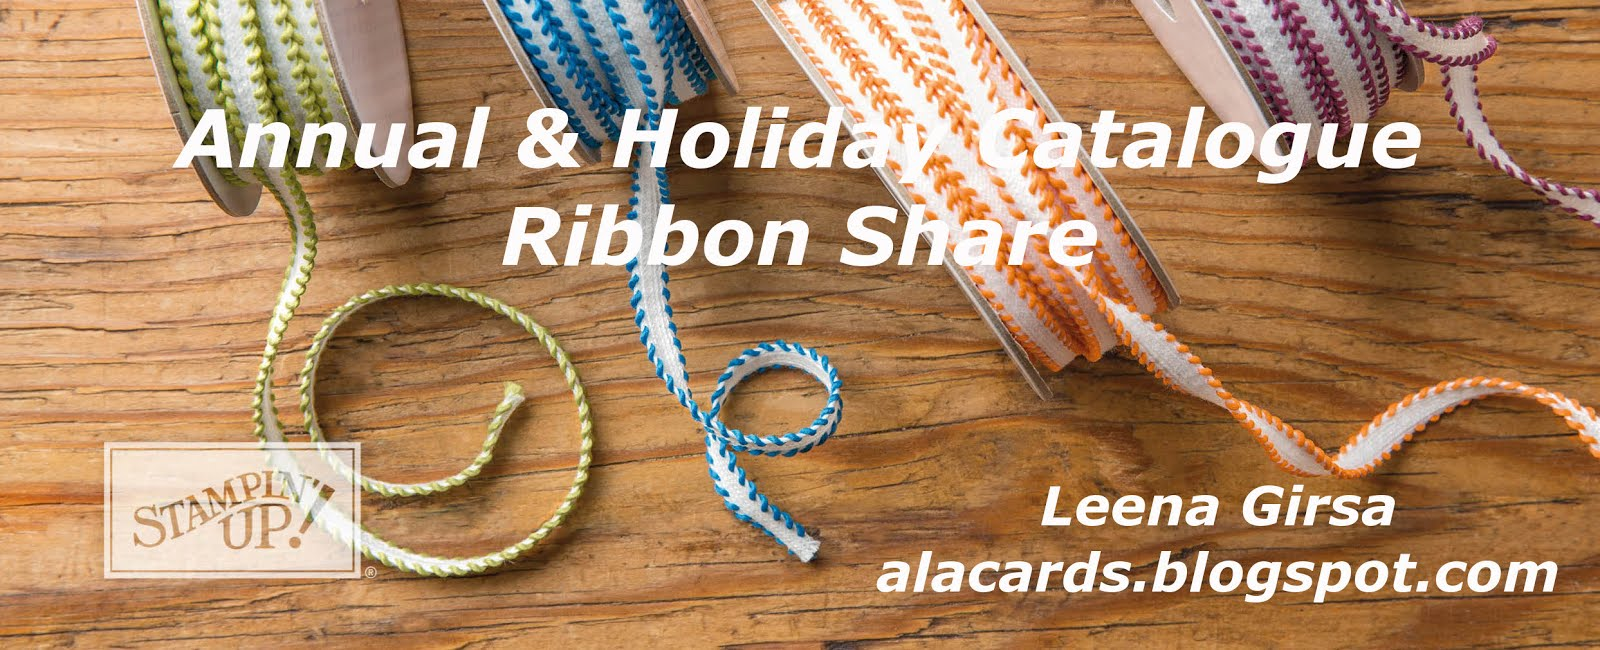 Annual & Holiday Catalogue Ribbon Share